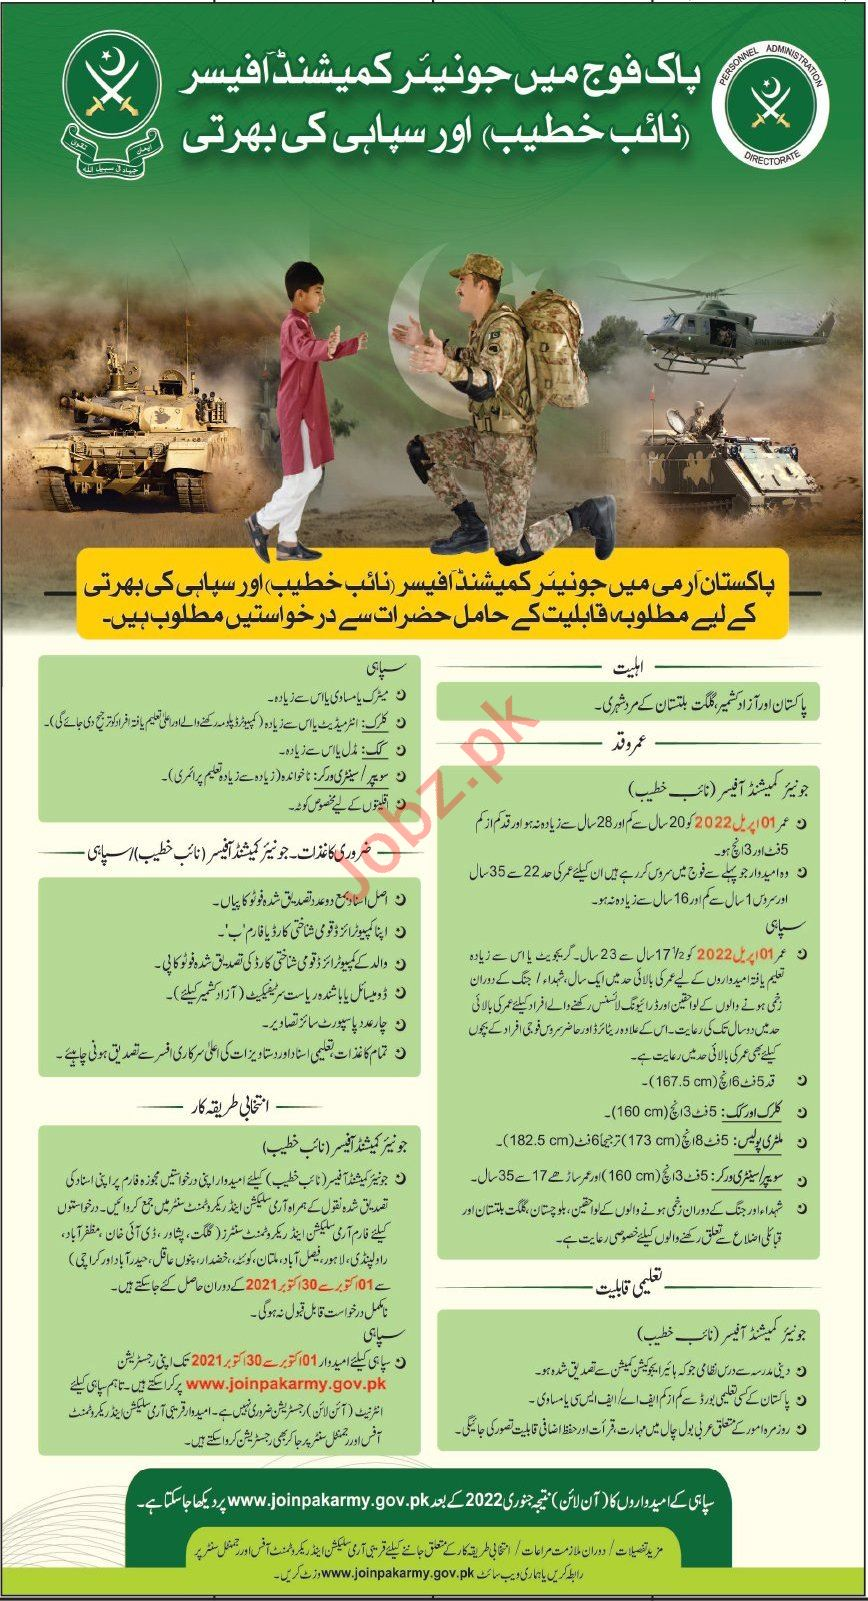 Pakistan Army Jobs 2021 for Junior Commissioned Officer